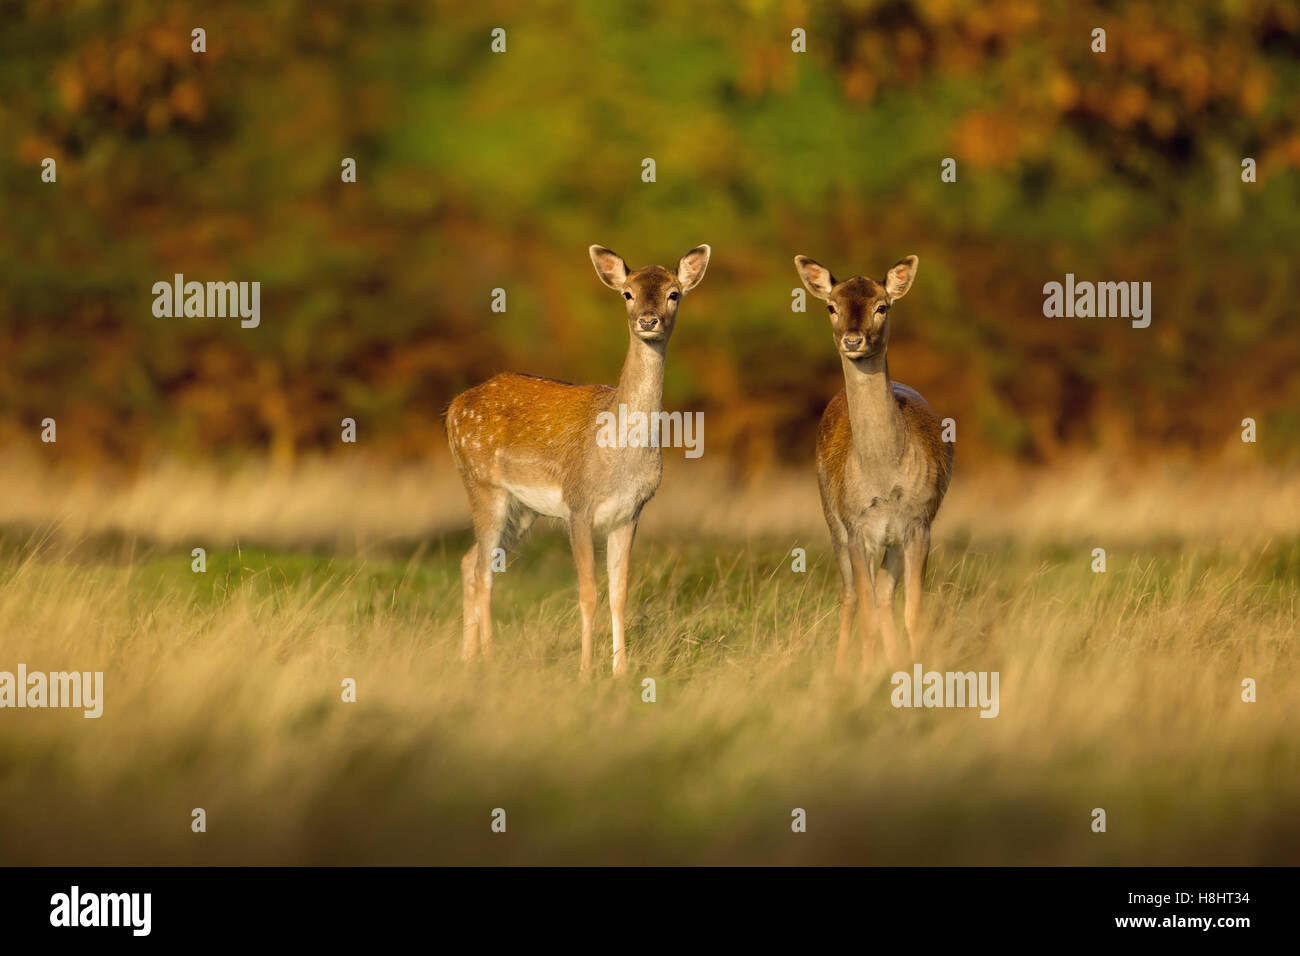 Two young Fallow deer - Stock Image